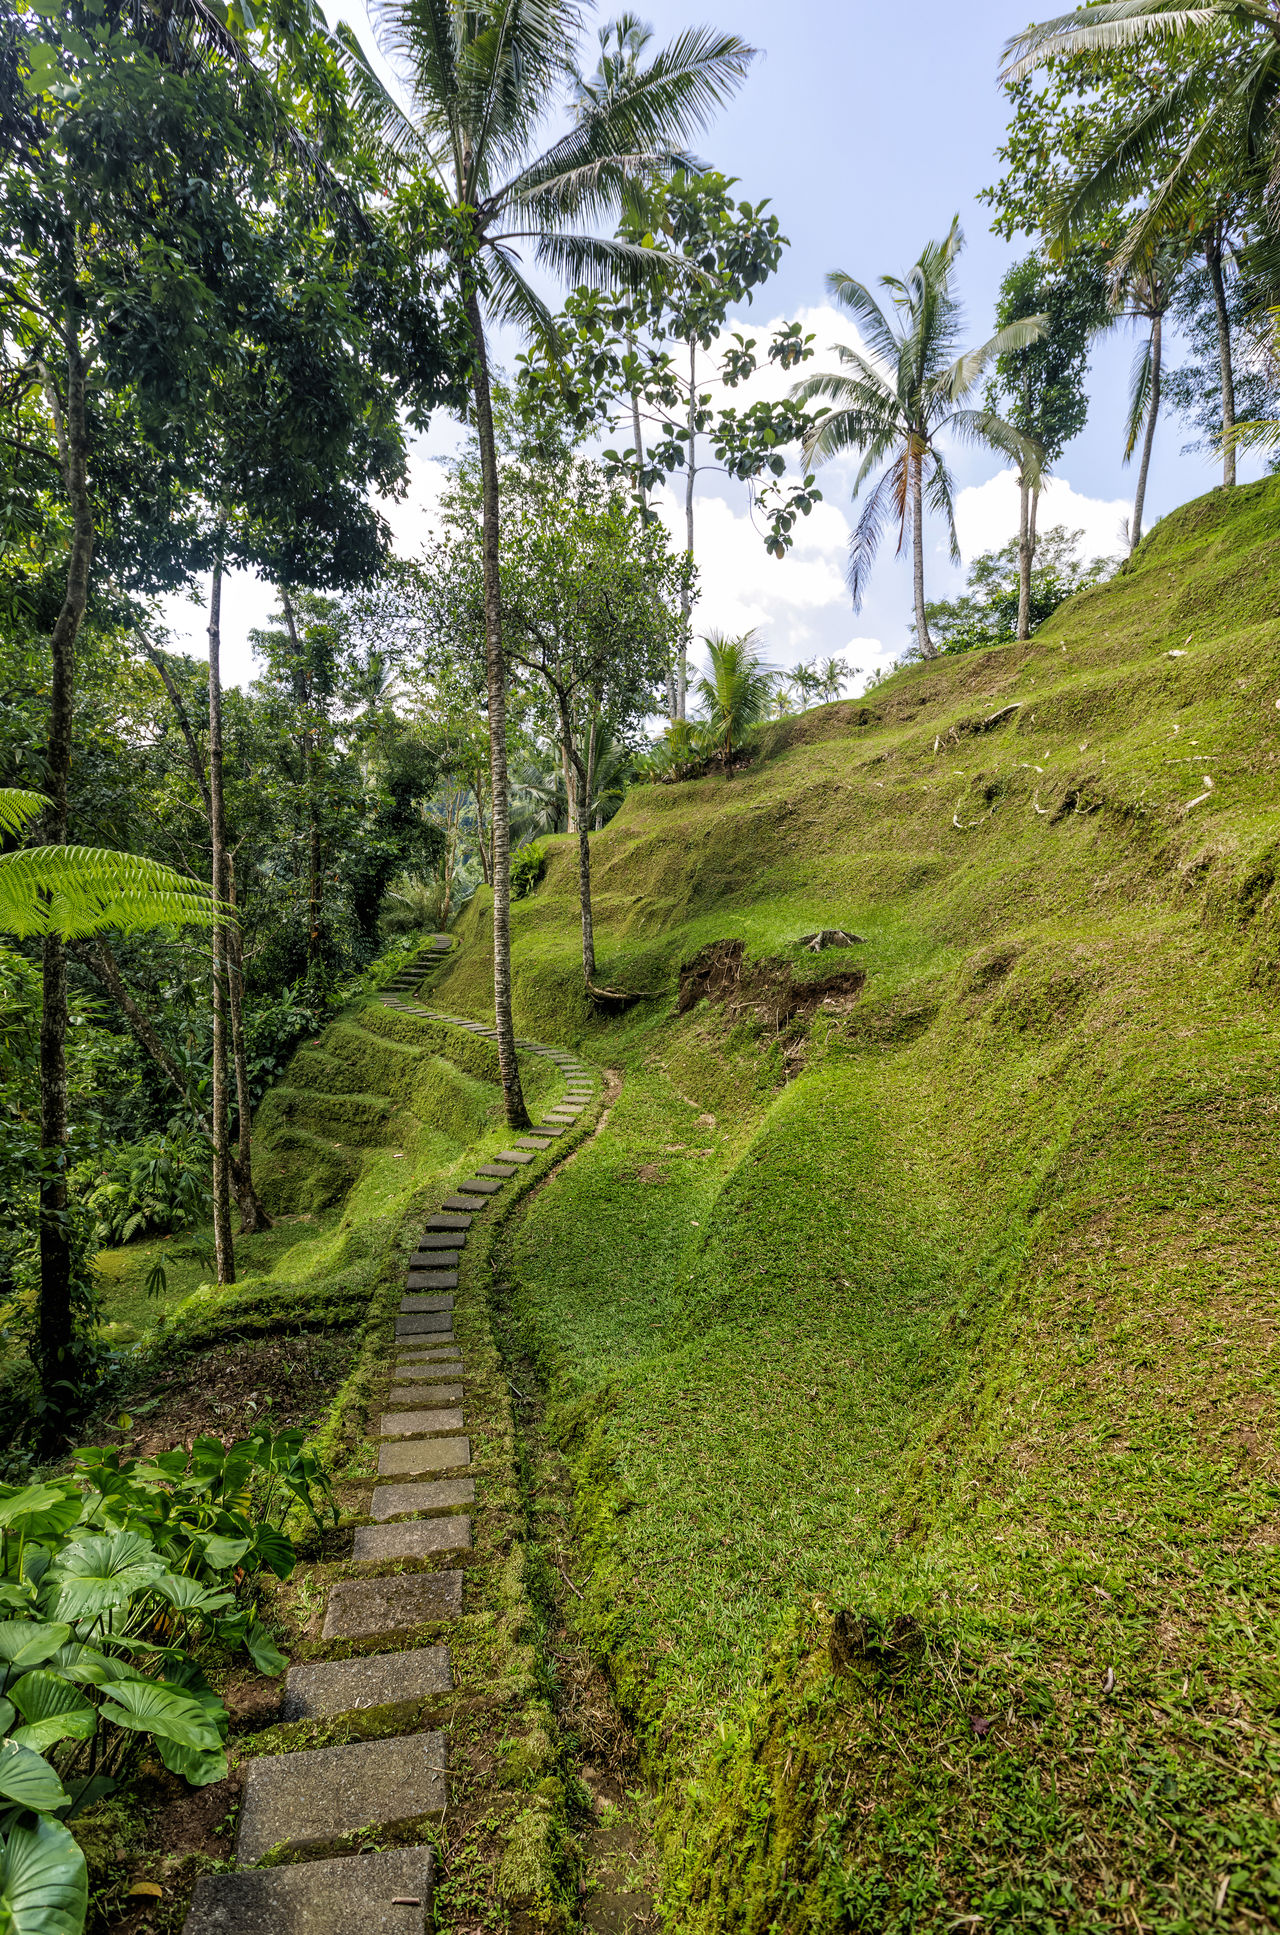 Jungle walk Bali Beauty In Nature Day Estate Footpath Grass Green Green Color INDONESIA Indonesia_photography Jungle Jungle Trekking Landscape Lush - Description Nature Nature Reserve No People Outdoors Scenics Social Issues The Way Forward Tranquility Tree Ubud Walk